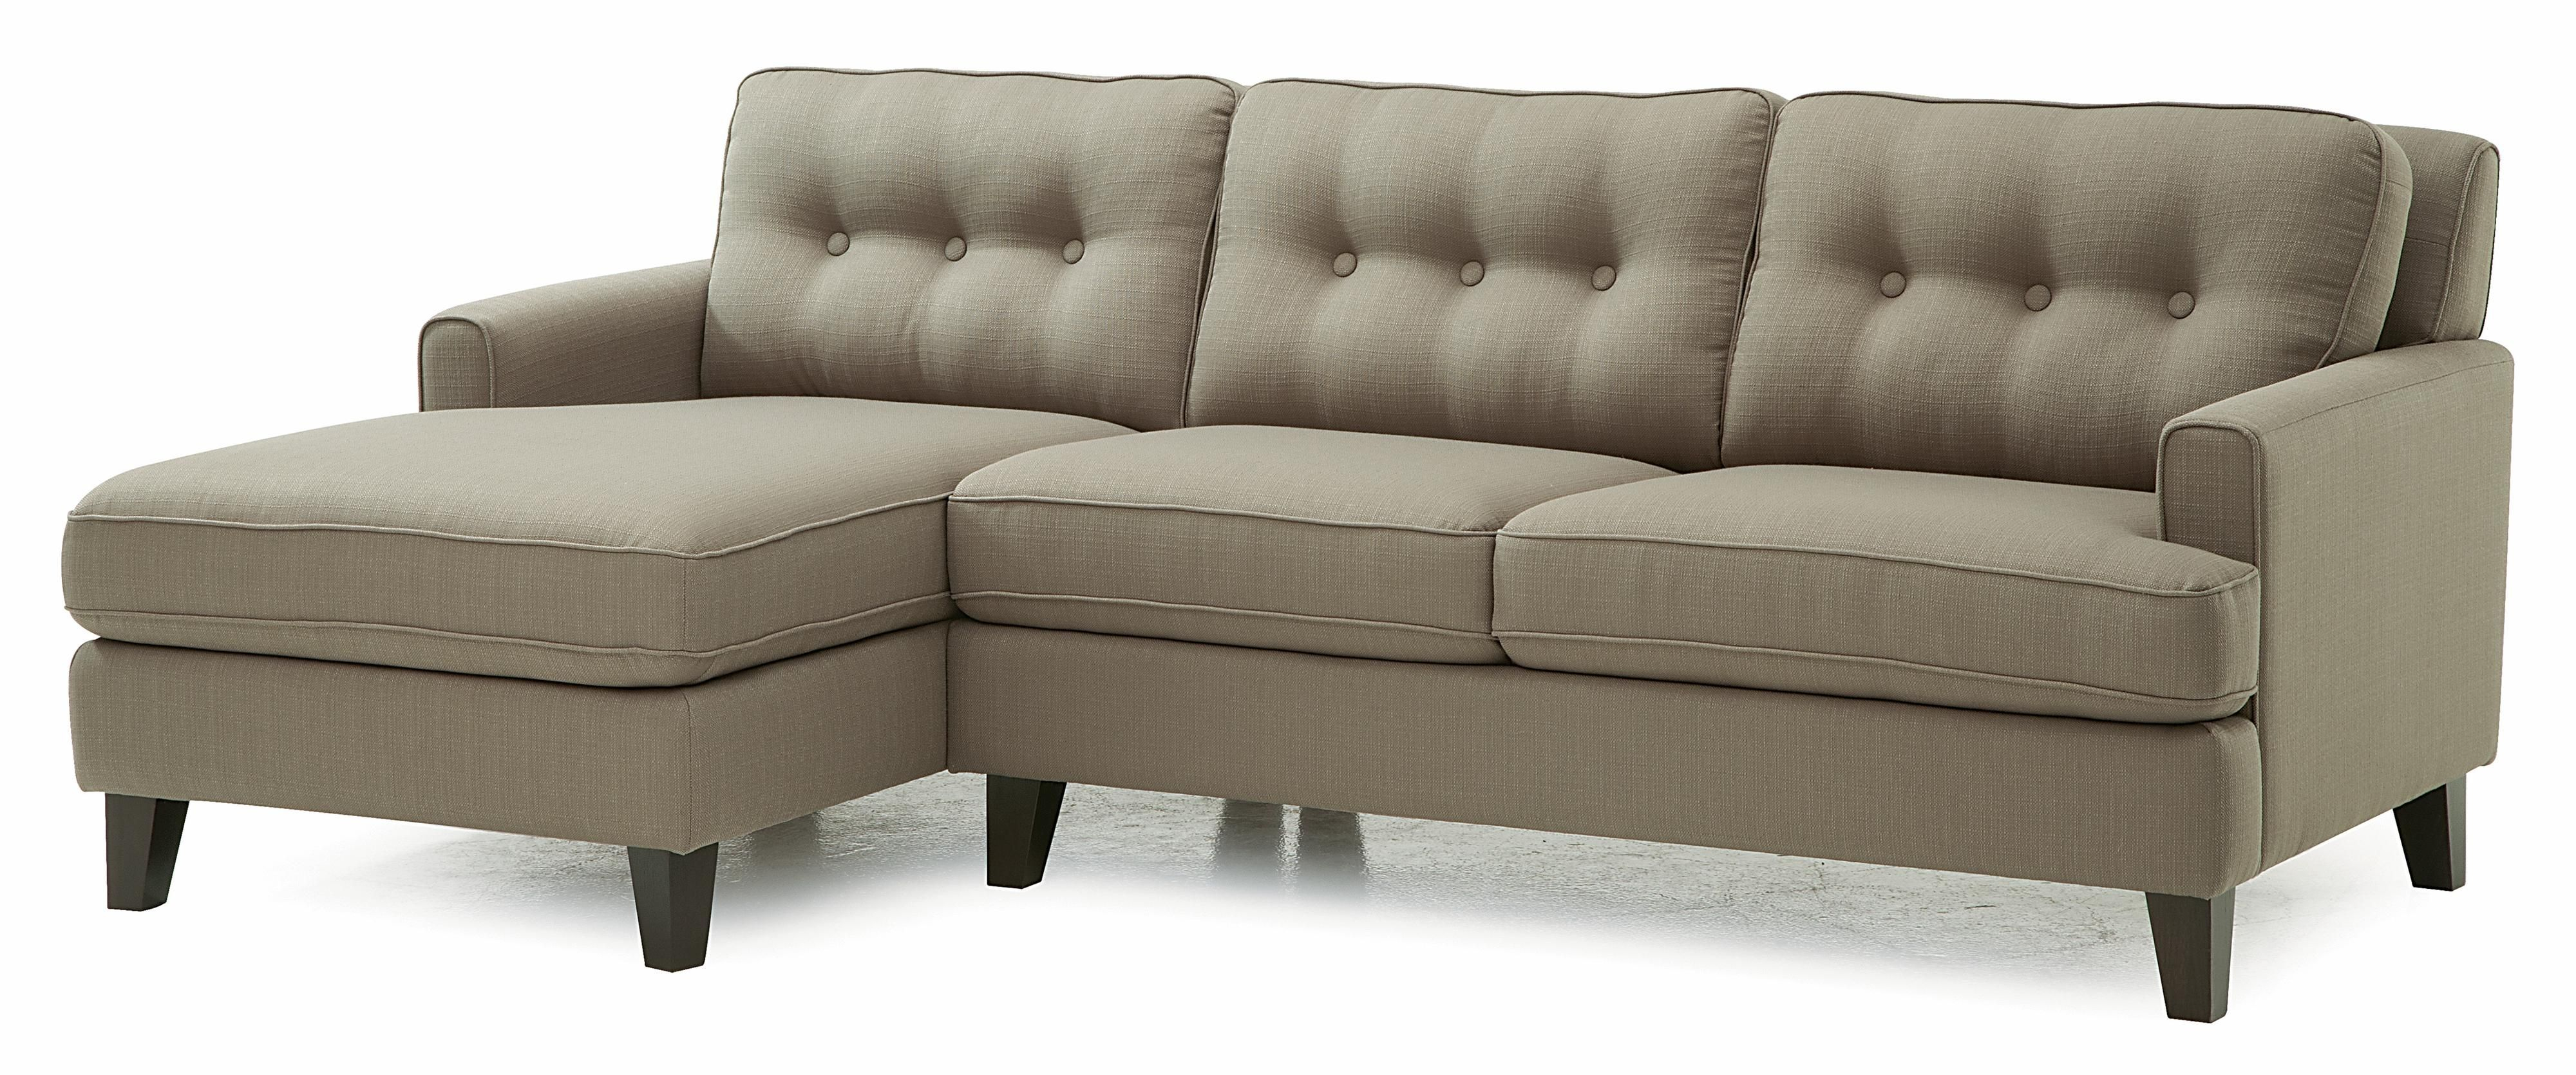 Palliser Barbara Two Piece Sectional Sofa With Lhf Chaise pertaining to measurements 4000 X 1669